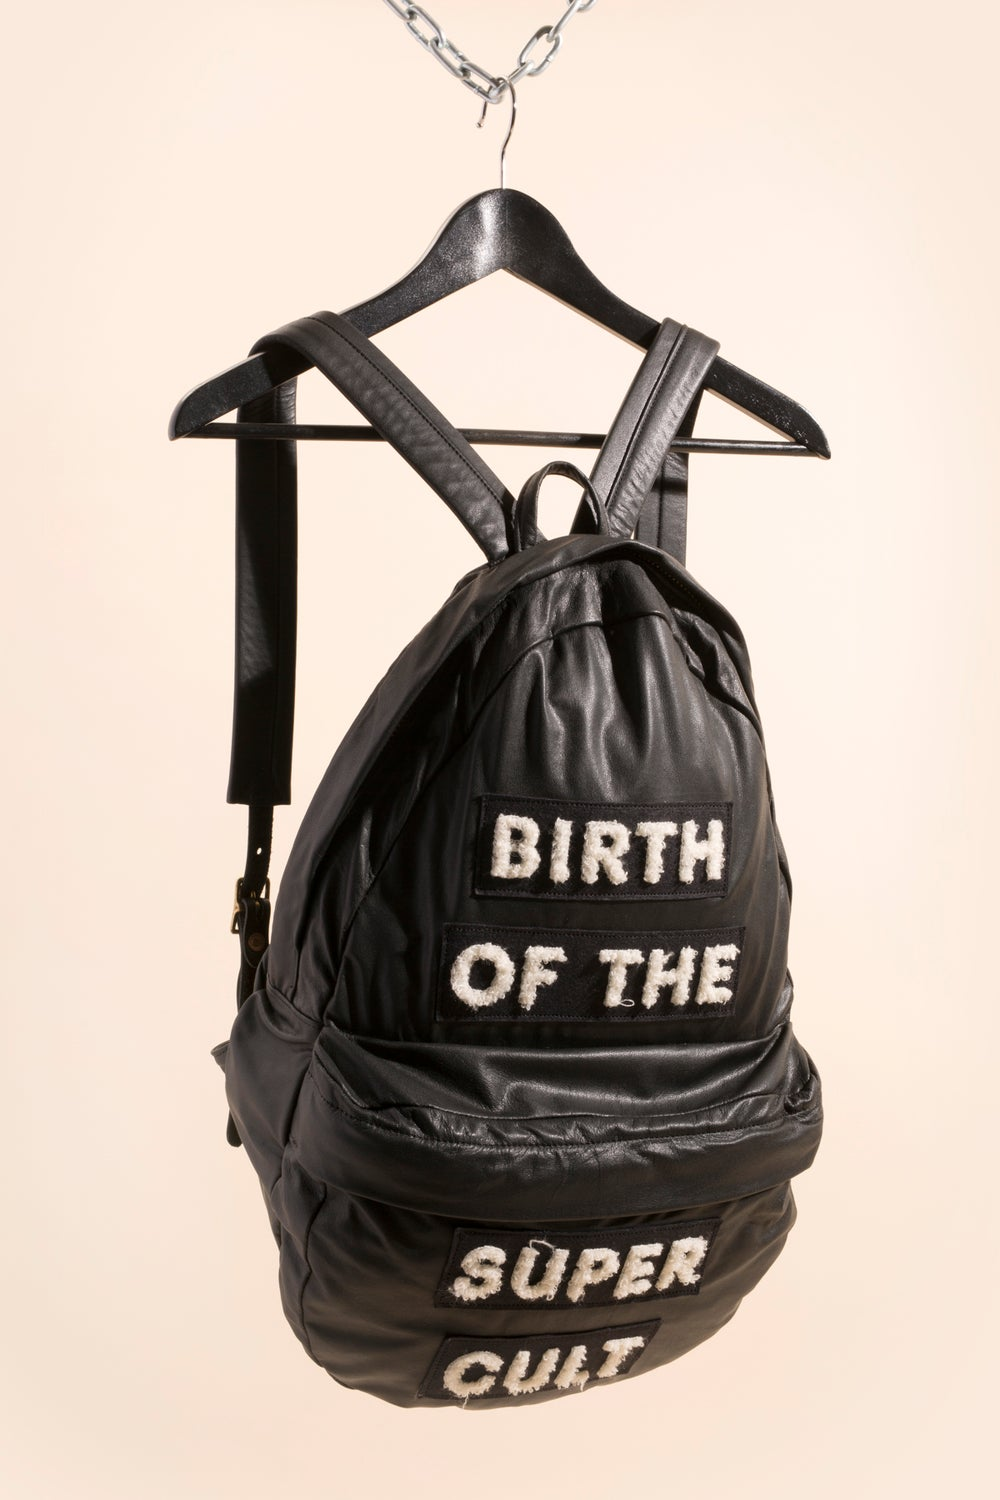 Image of Leather Backpack - Birth of the Super Cult